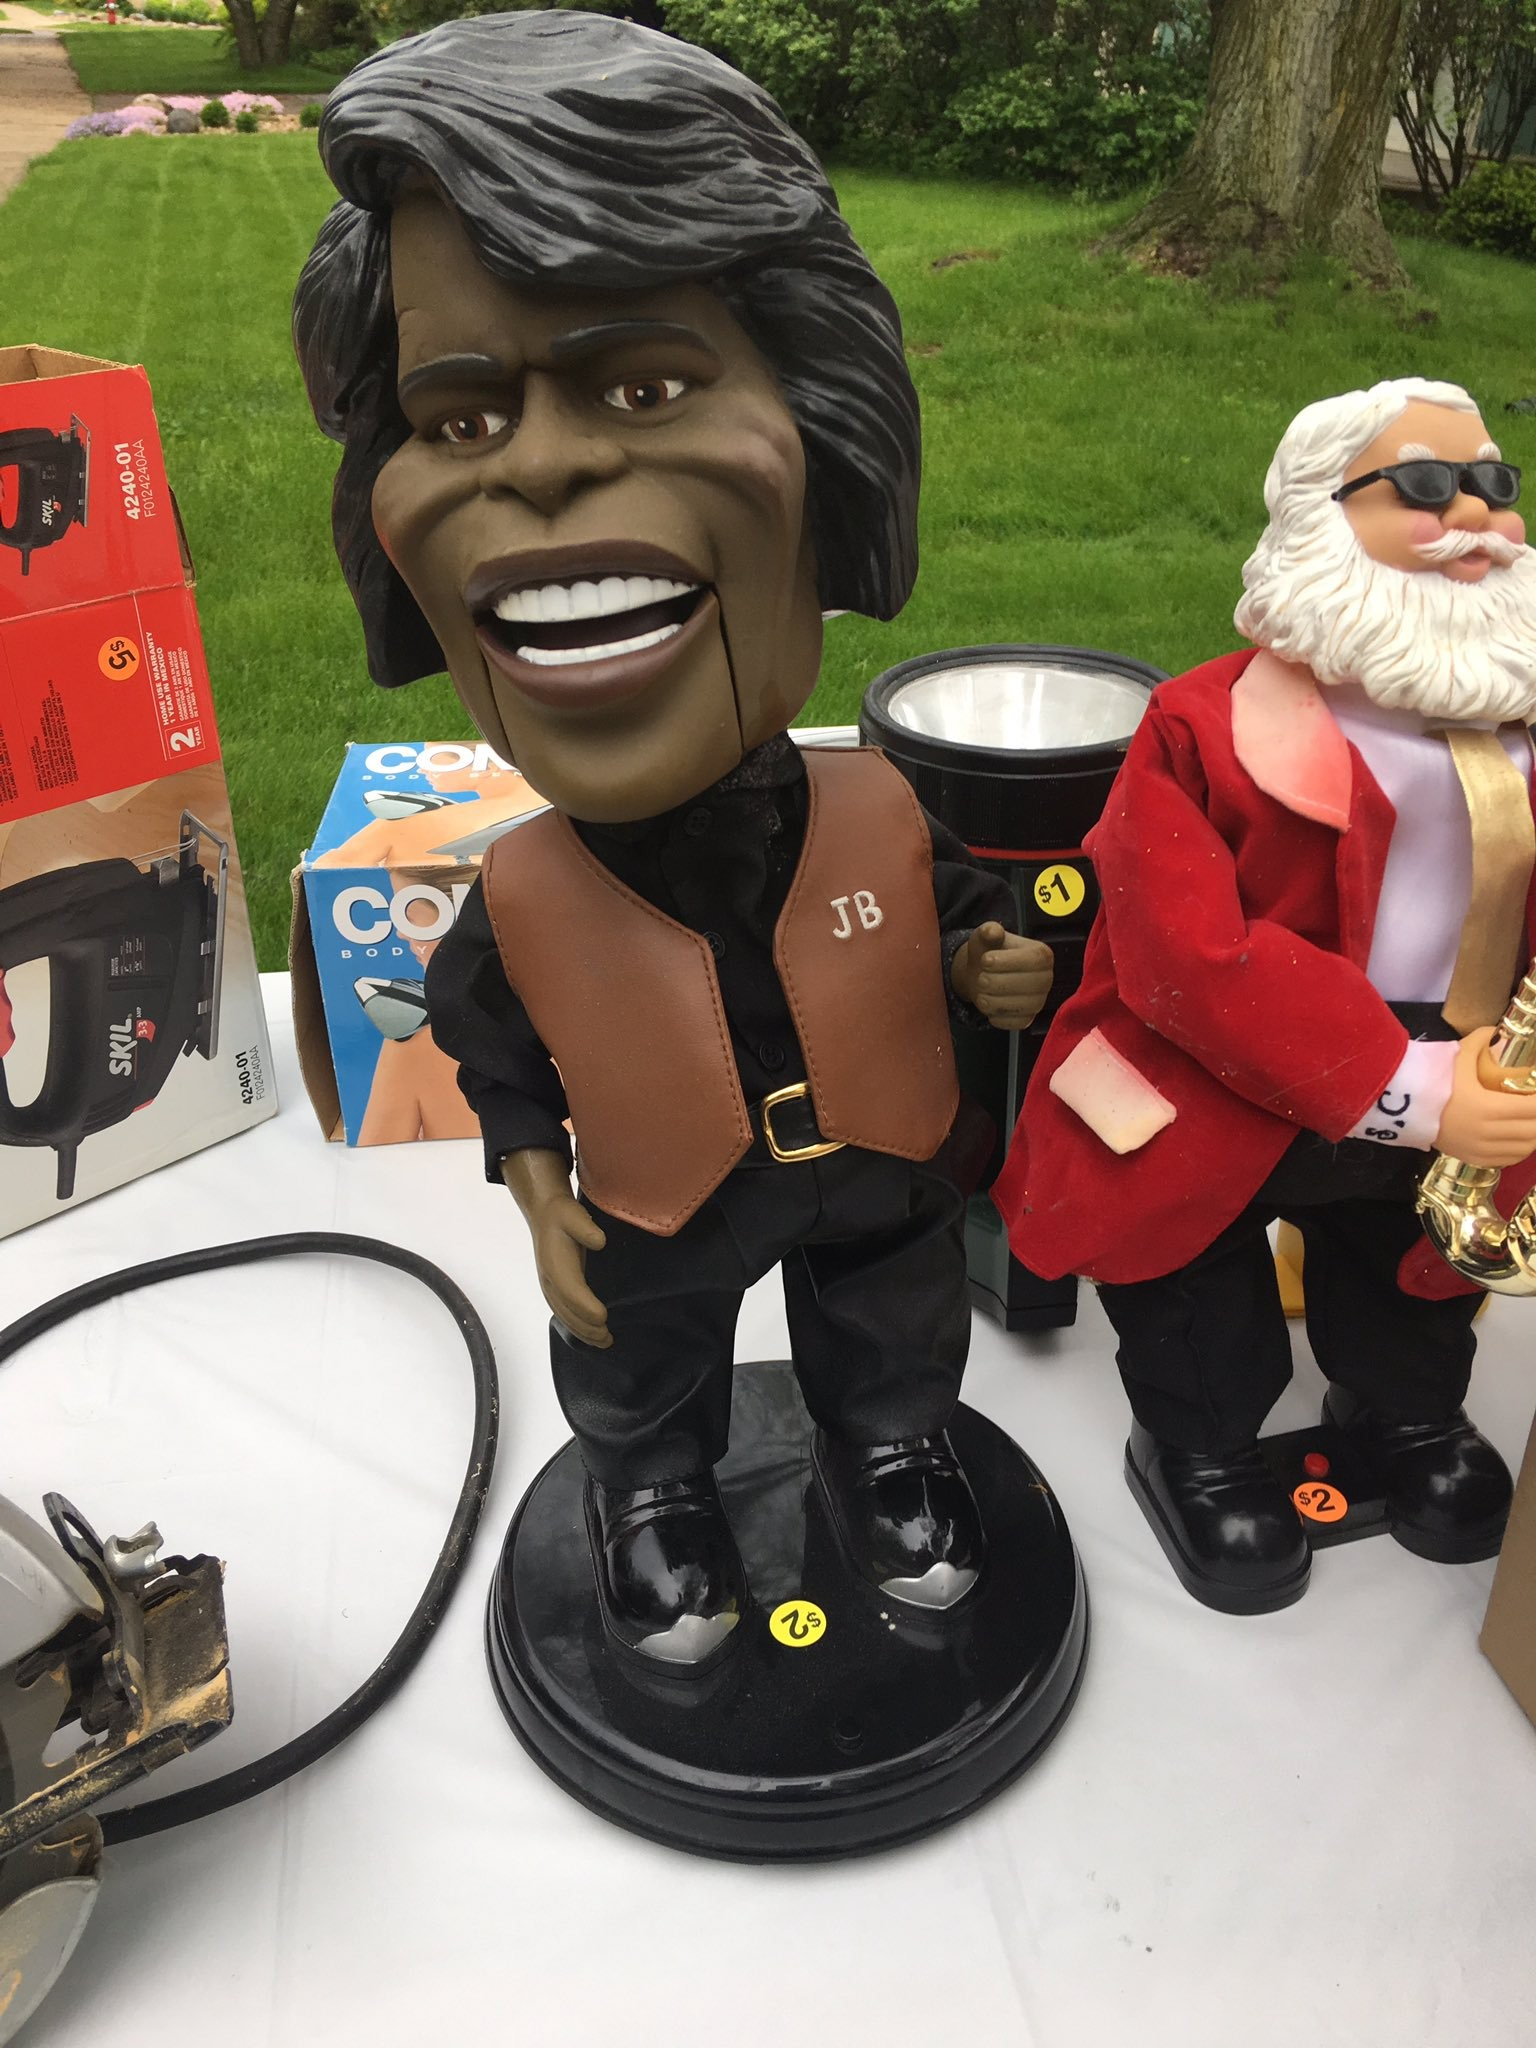 James Brown bobblehead